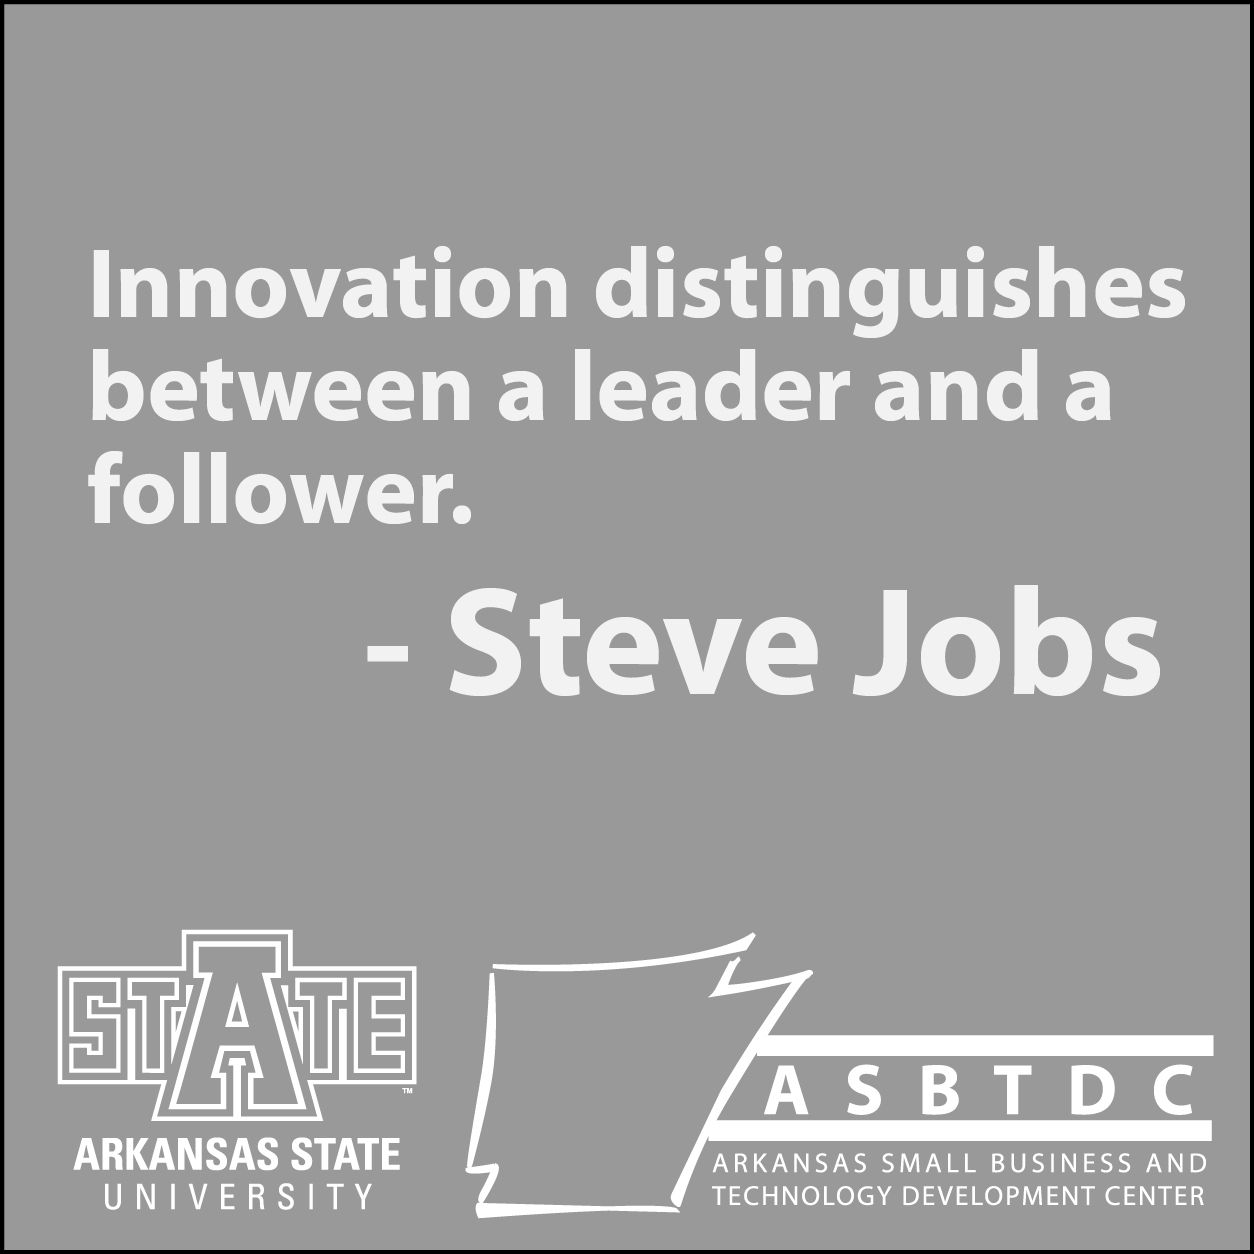 Pin By Arkansas State University Sbtd On Inspiring Small Business Quotes Small Biz Quotes Business Quotes